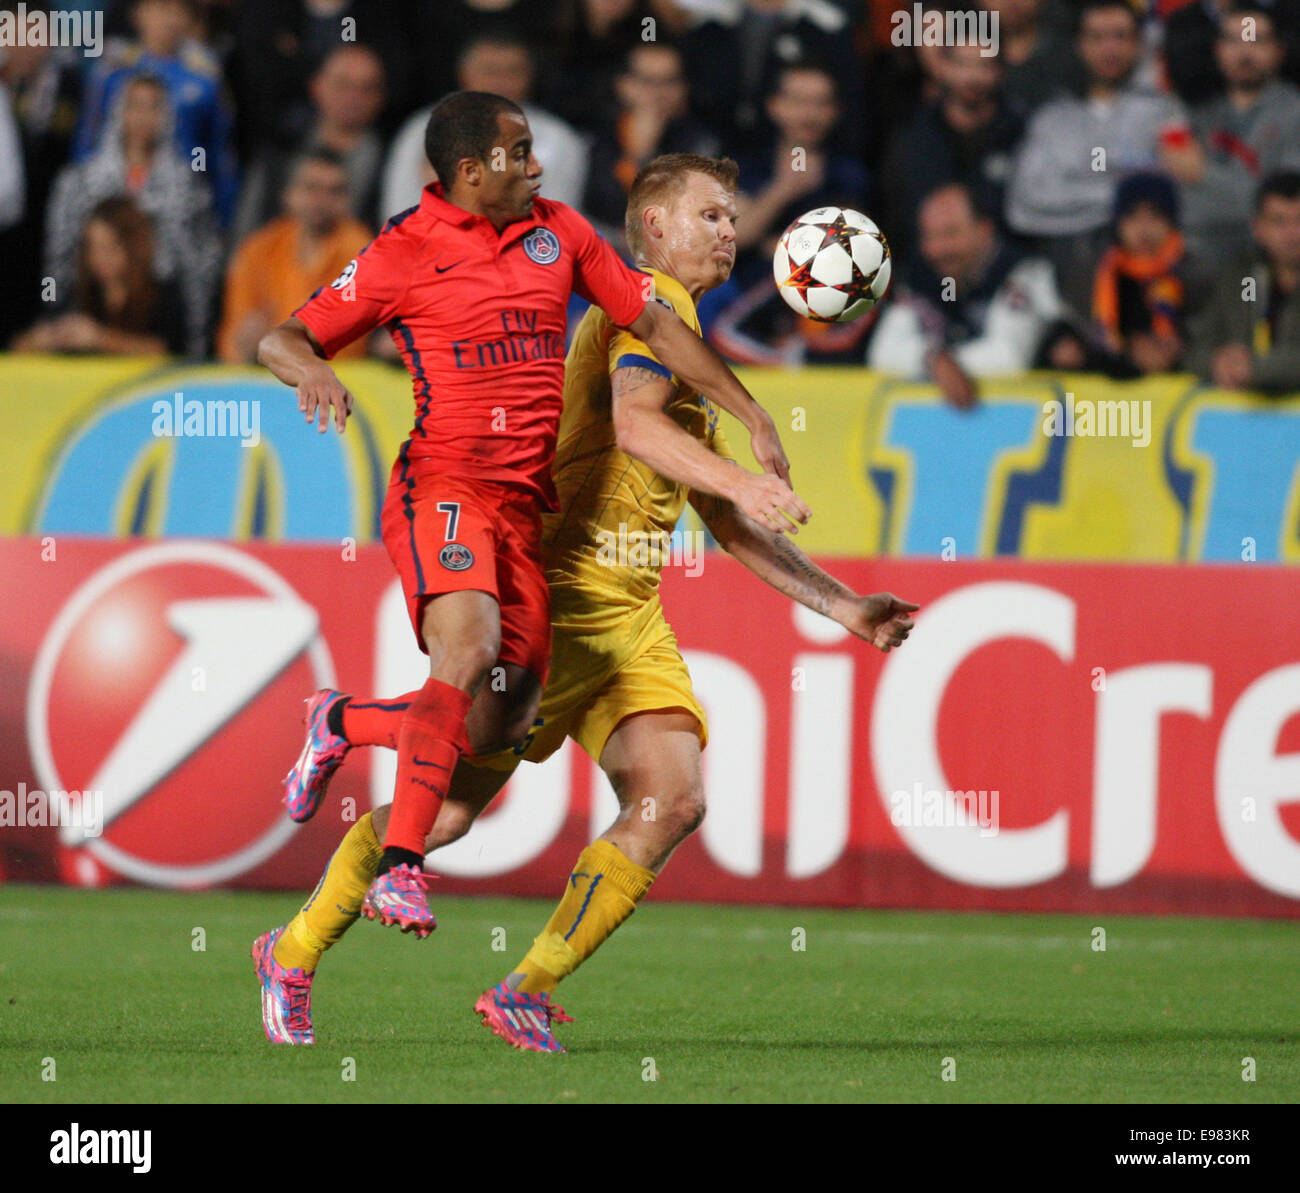 Is Lucas Moura Champions League Tied: Lucas Moura Stock Photos & Lucas Moura Stock Images